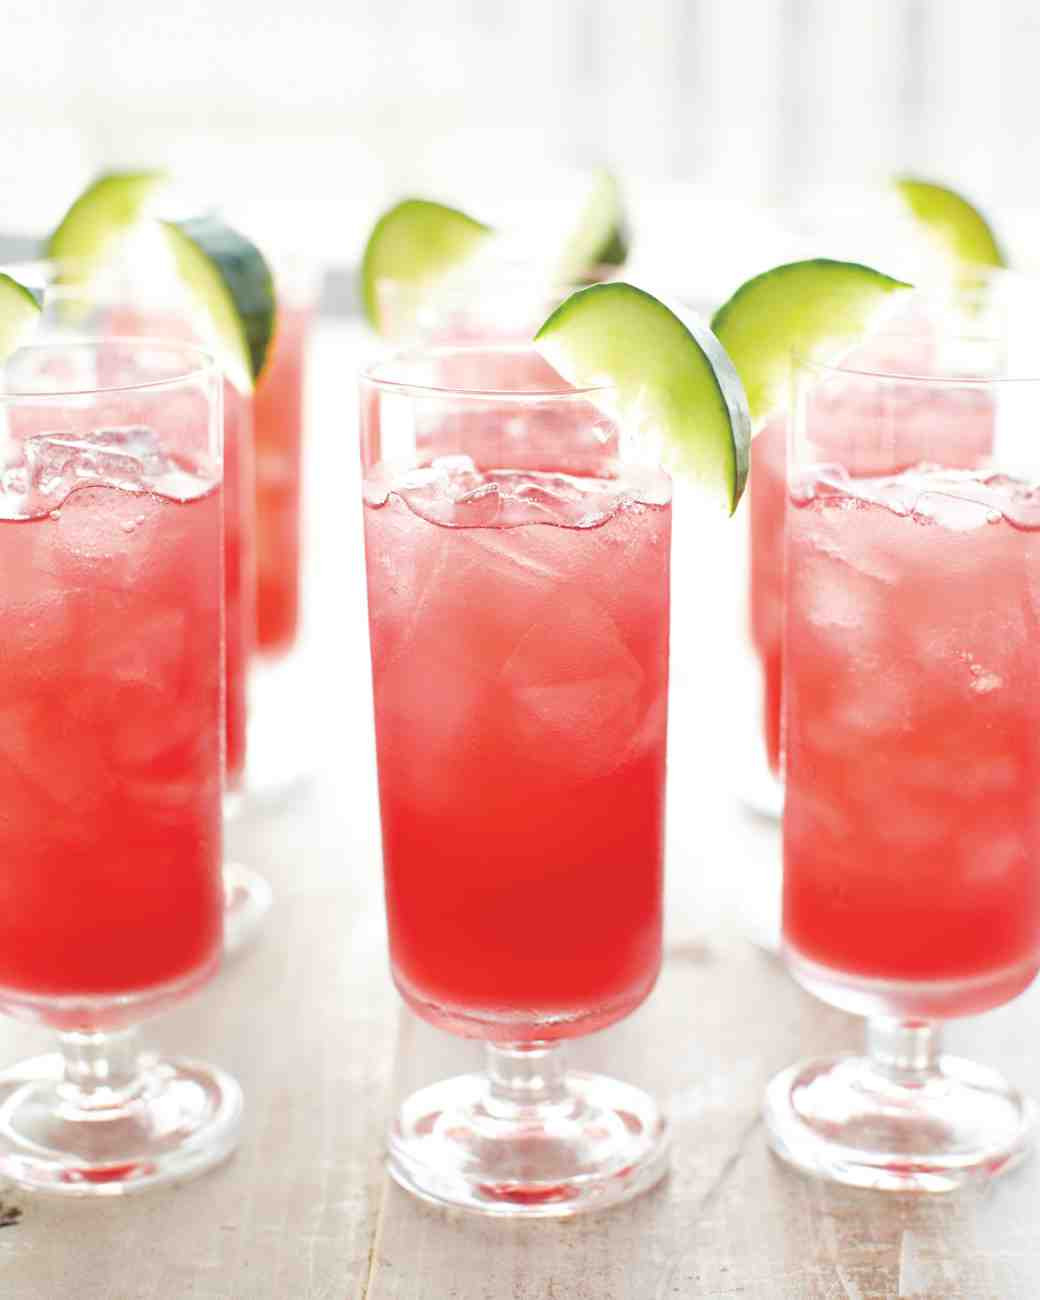 Vodka Drinks Mixers  Vodka Cocktail Recipes for all Seasons